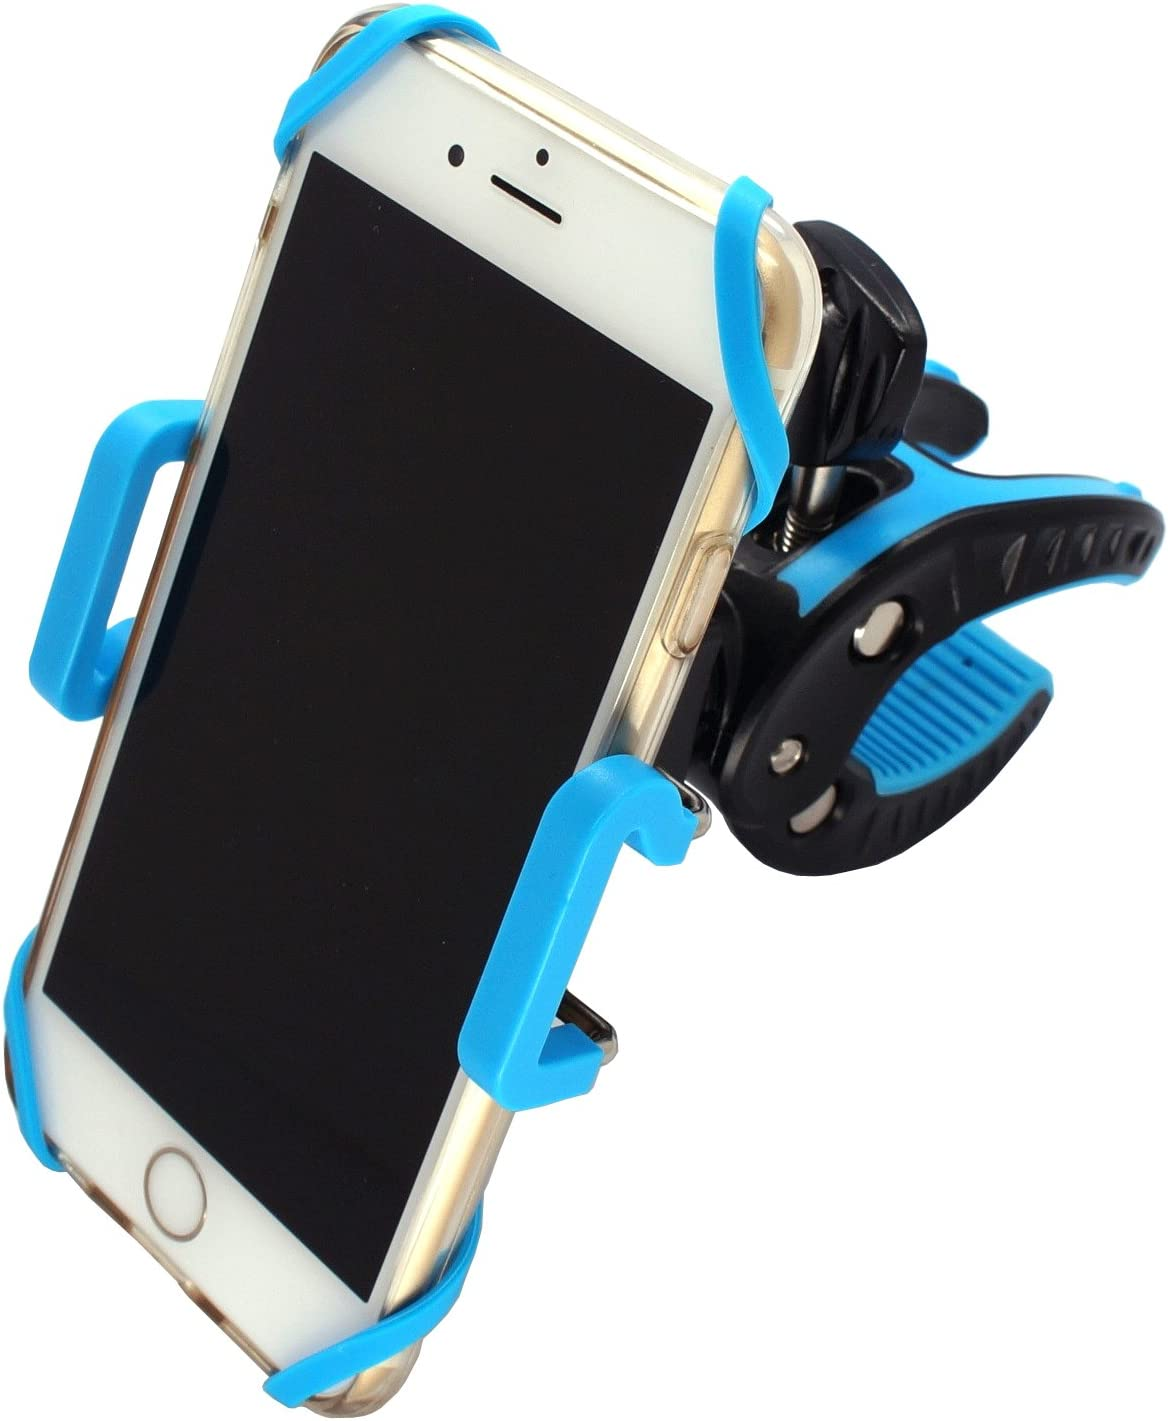 Patent Designed Mobile Catch Grab Everywhere Universal Cell Phone Bicycle Rack Handlebar & Motorcycle Holder Cradle for iPhone 7/6/6S/6S plus/5S/5C,Samsung Galaxy S3/S4/S5/S6/S7 Note 3/4/5,Nexus,HTC 71Caj22BEi3L